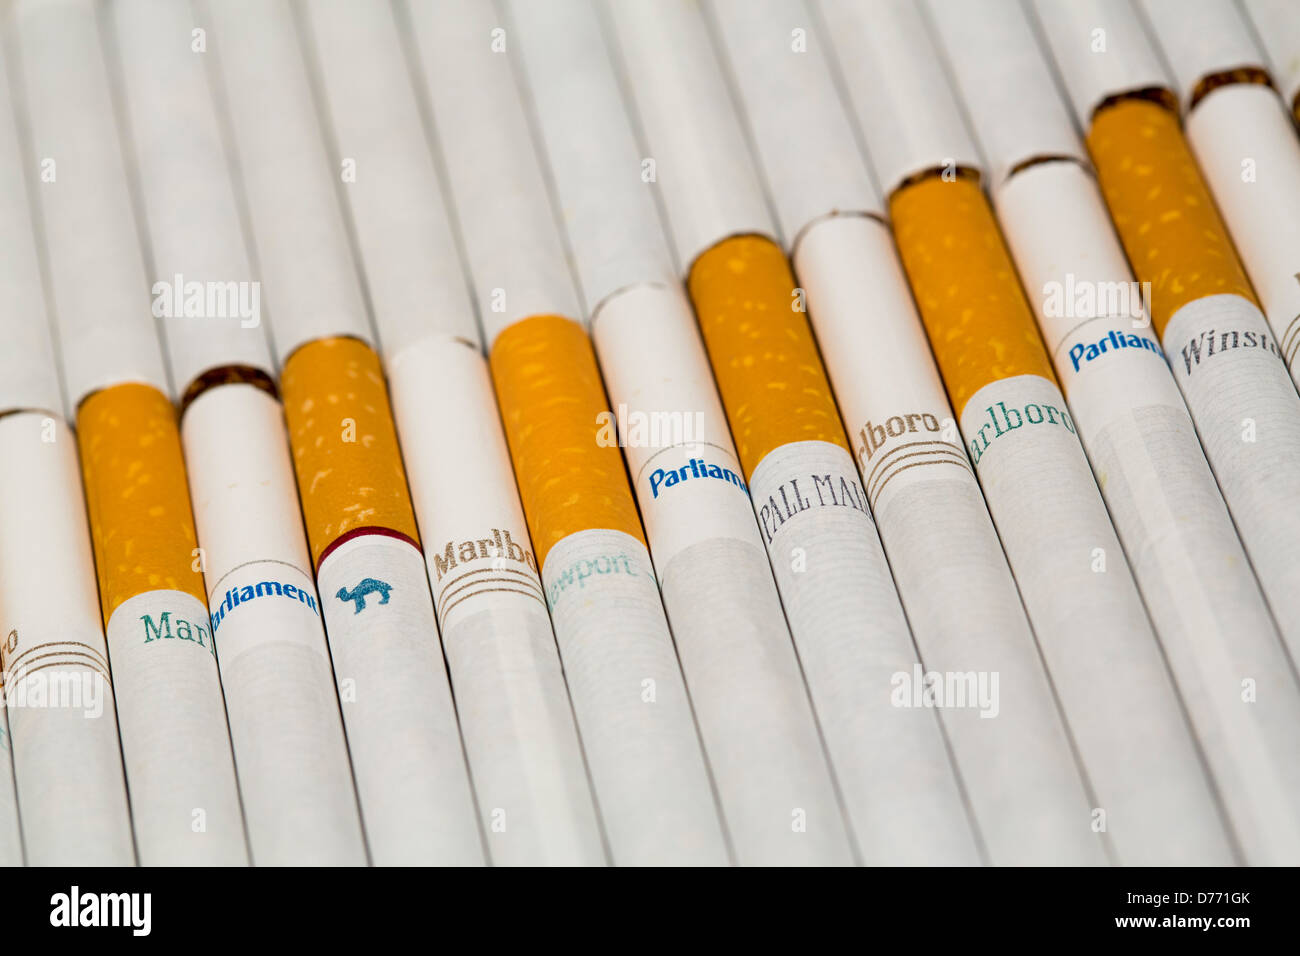 Cheapest type of Parliament cigarettes